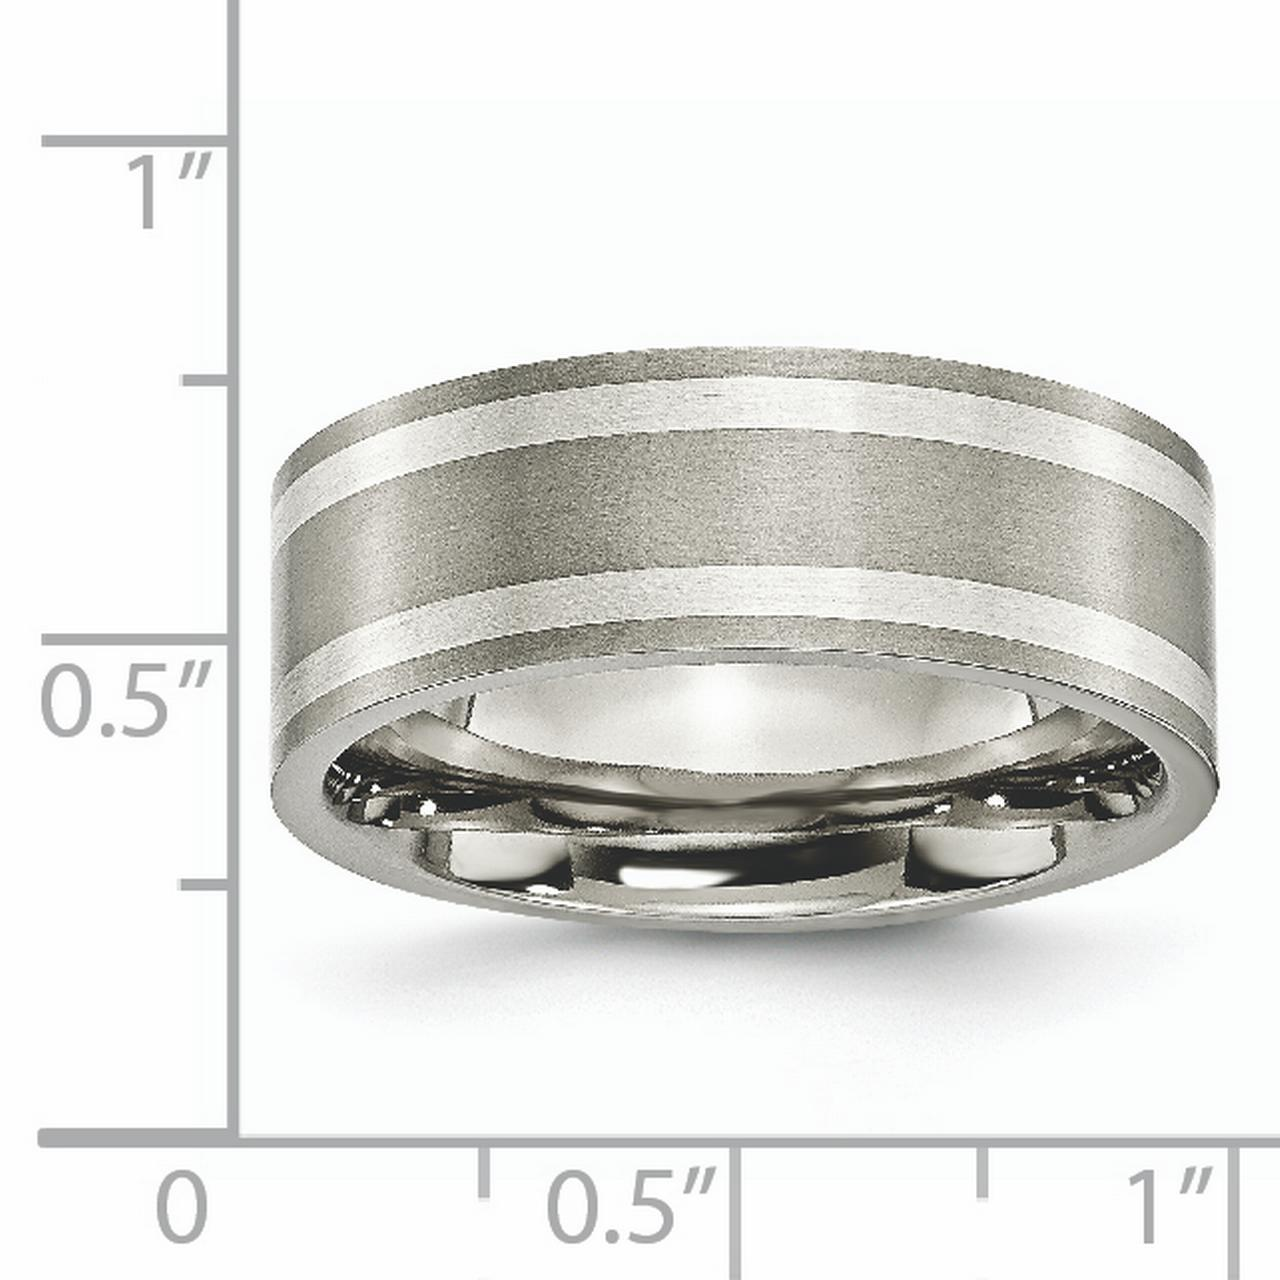 Titanium Sterling Silver Inlay Flat 8mm Brushed and Polished Band